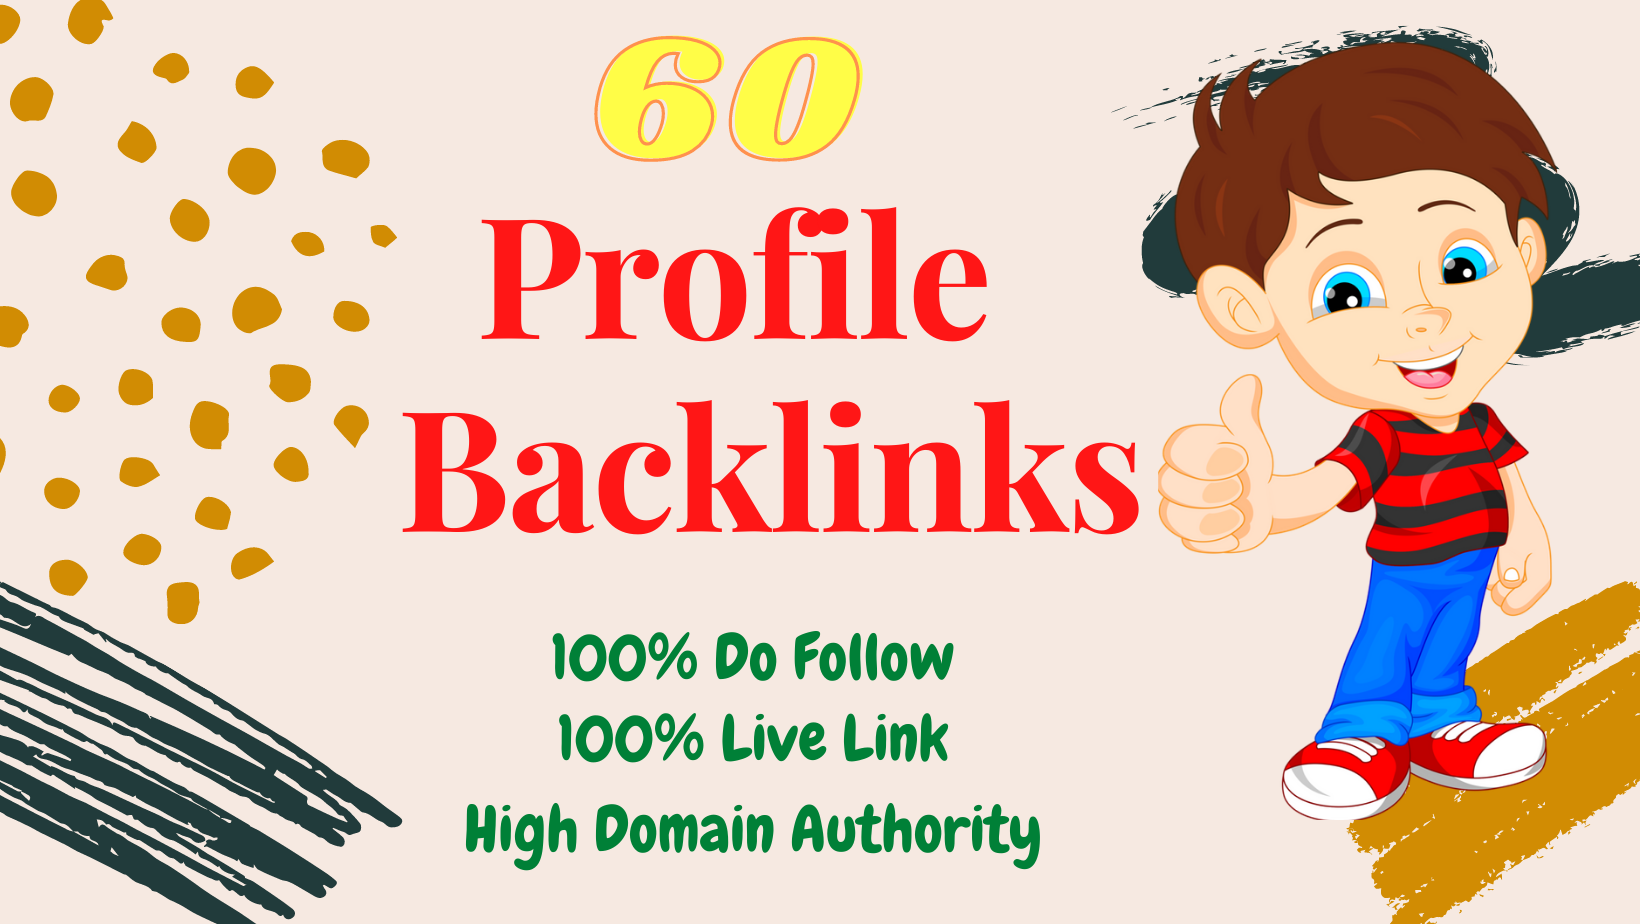 I want to give Unique Domain 60 profile backlinks with high authority DA PA